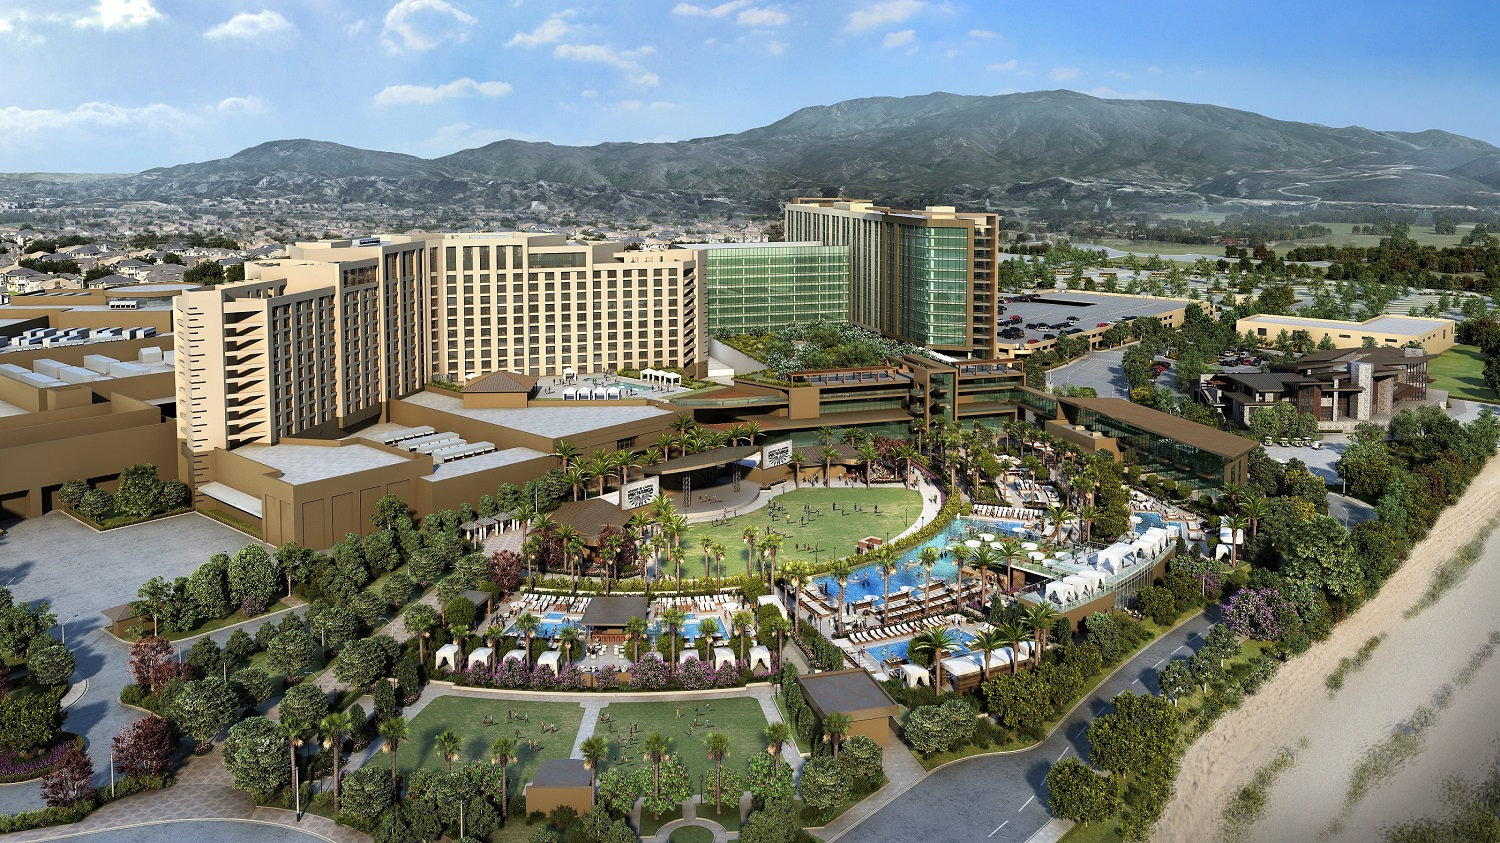 Pechanga Band moves ahead with $285M expansion at casino